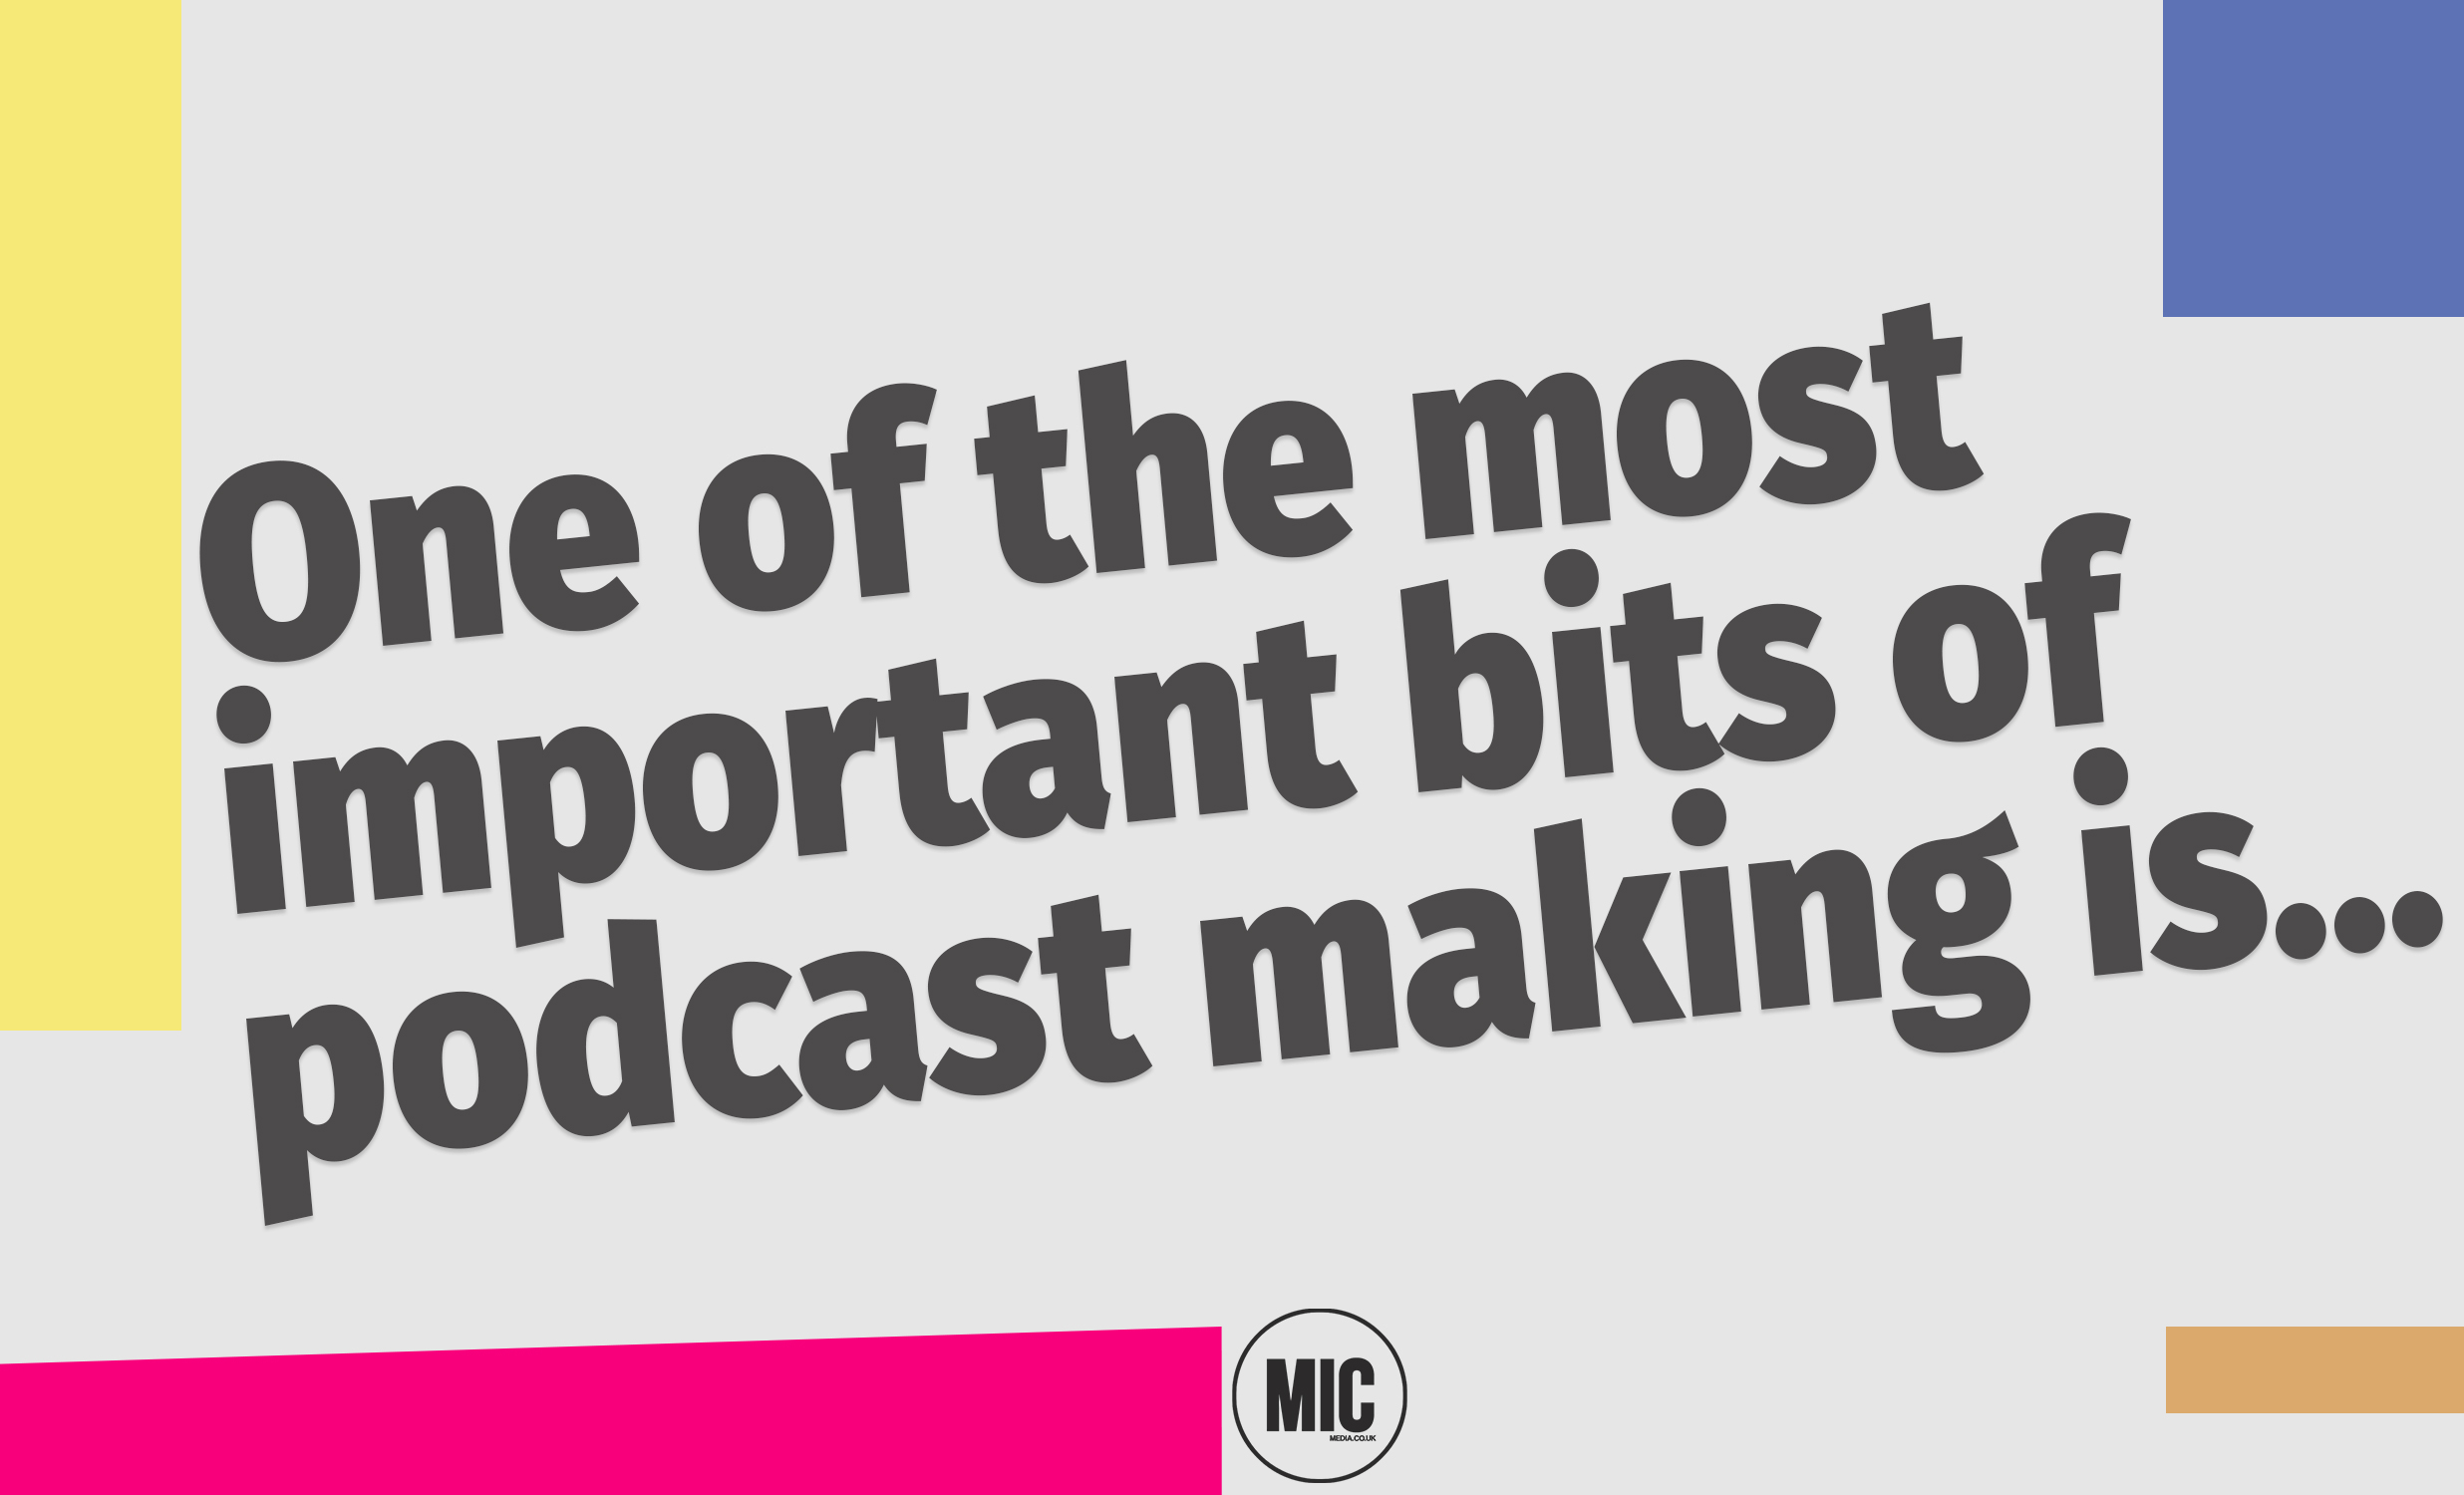 a graphic of text that says 'one of the most important bits of podcast making is""